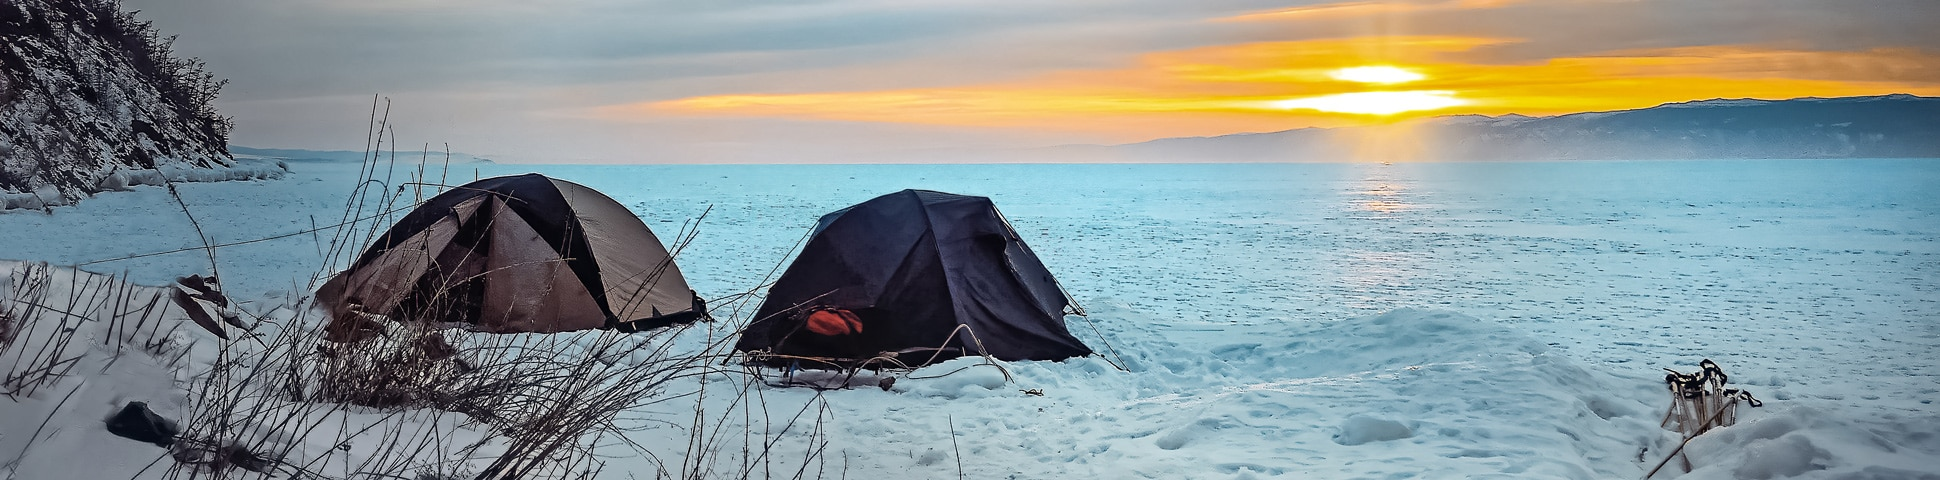 Overnight Winter Trips: Learn Winter Camping